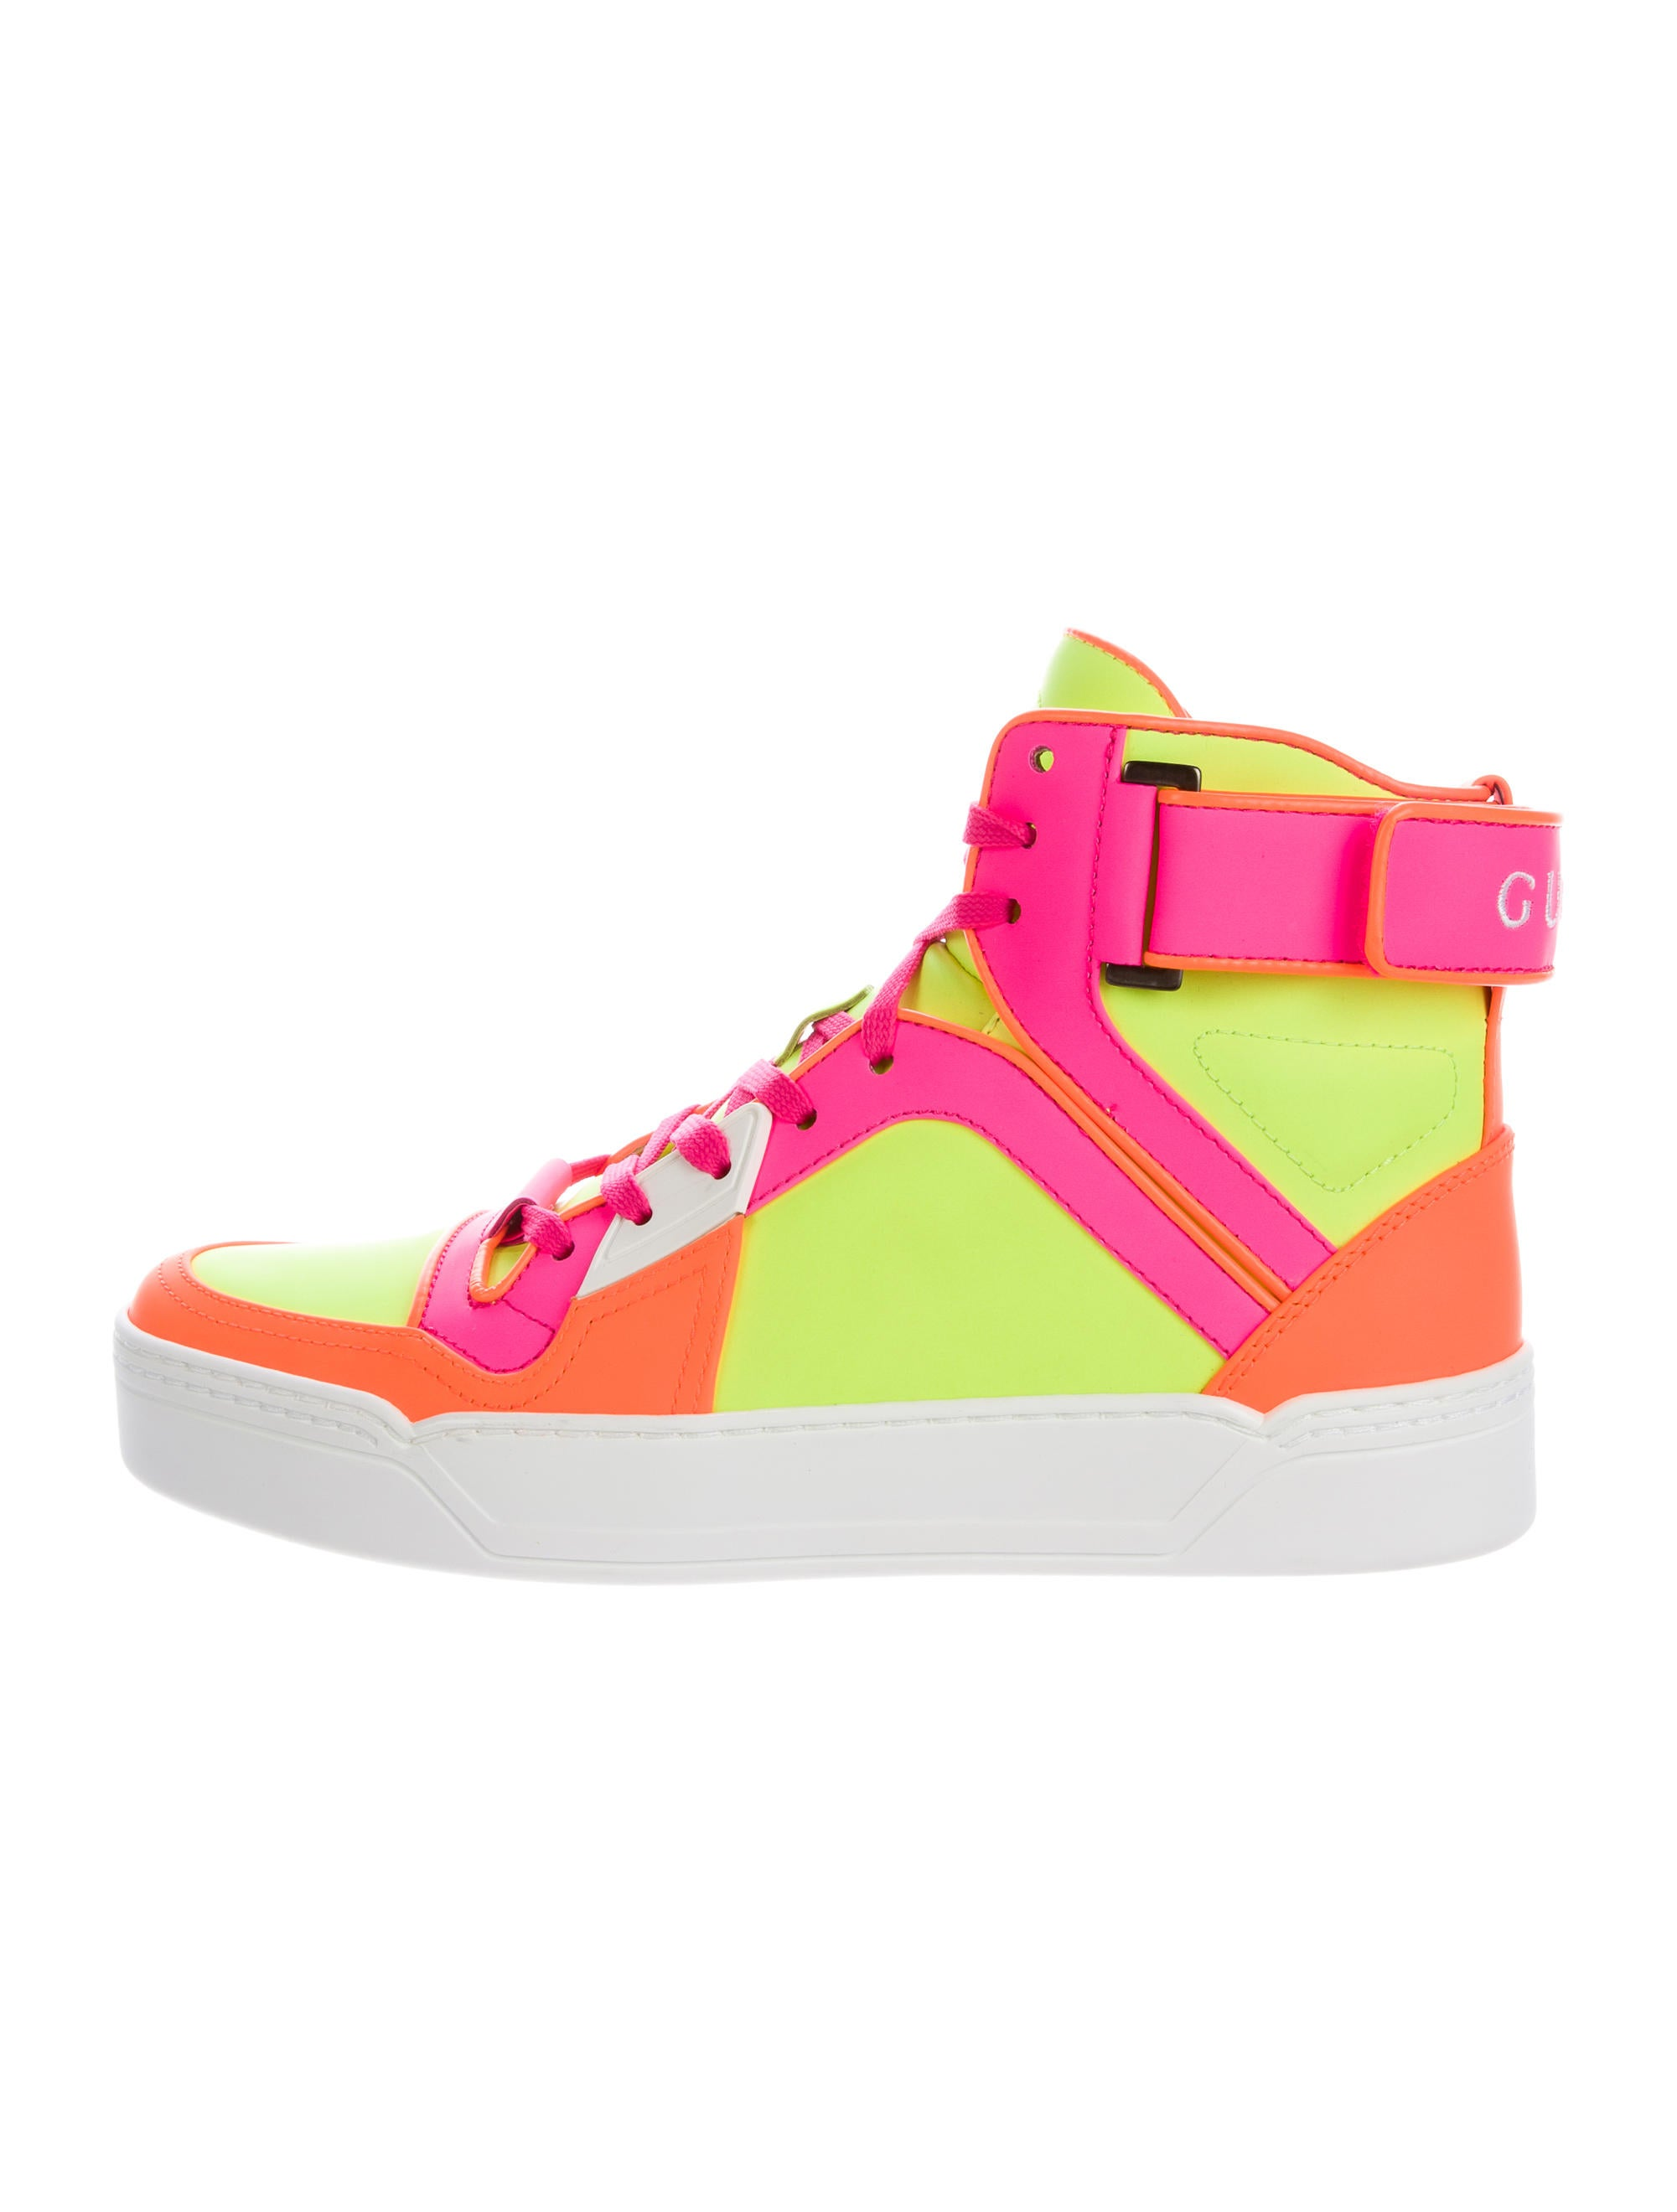 Gucci Neon High-Top Sneakers - Shoes